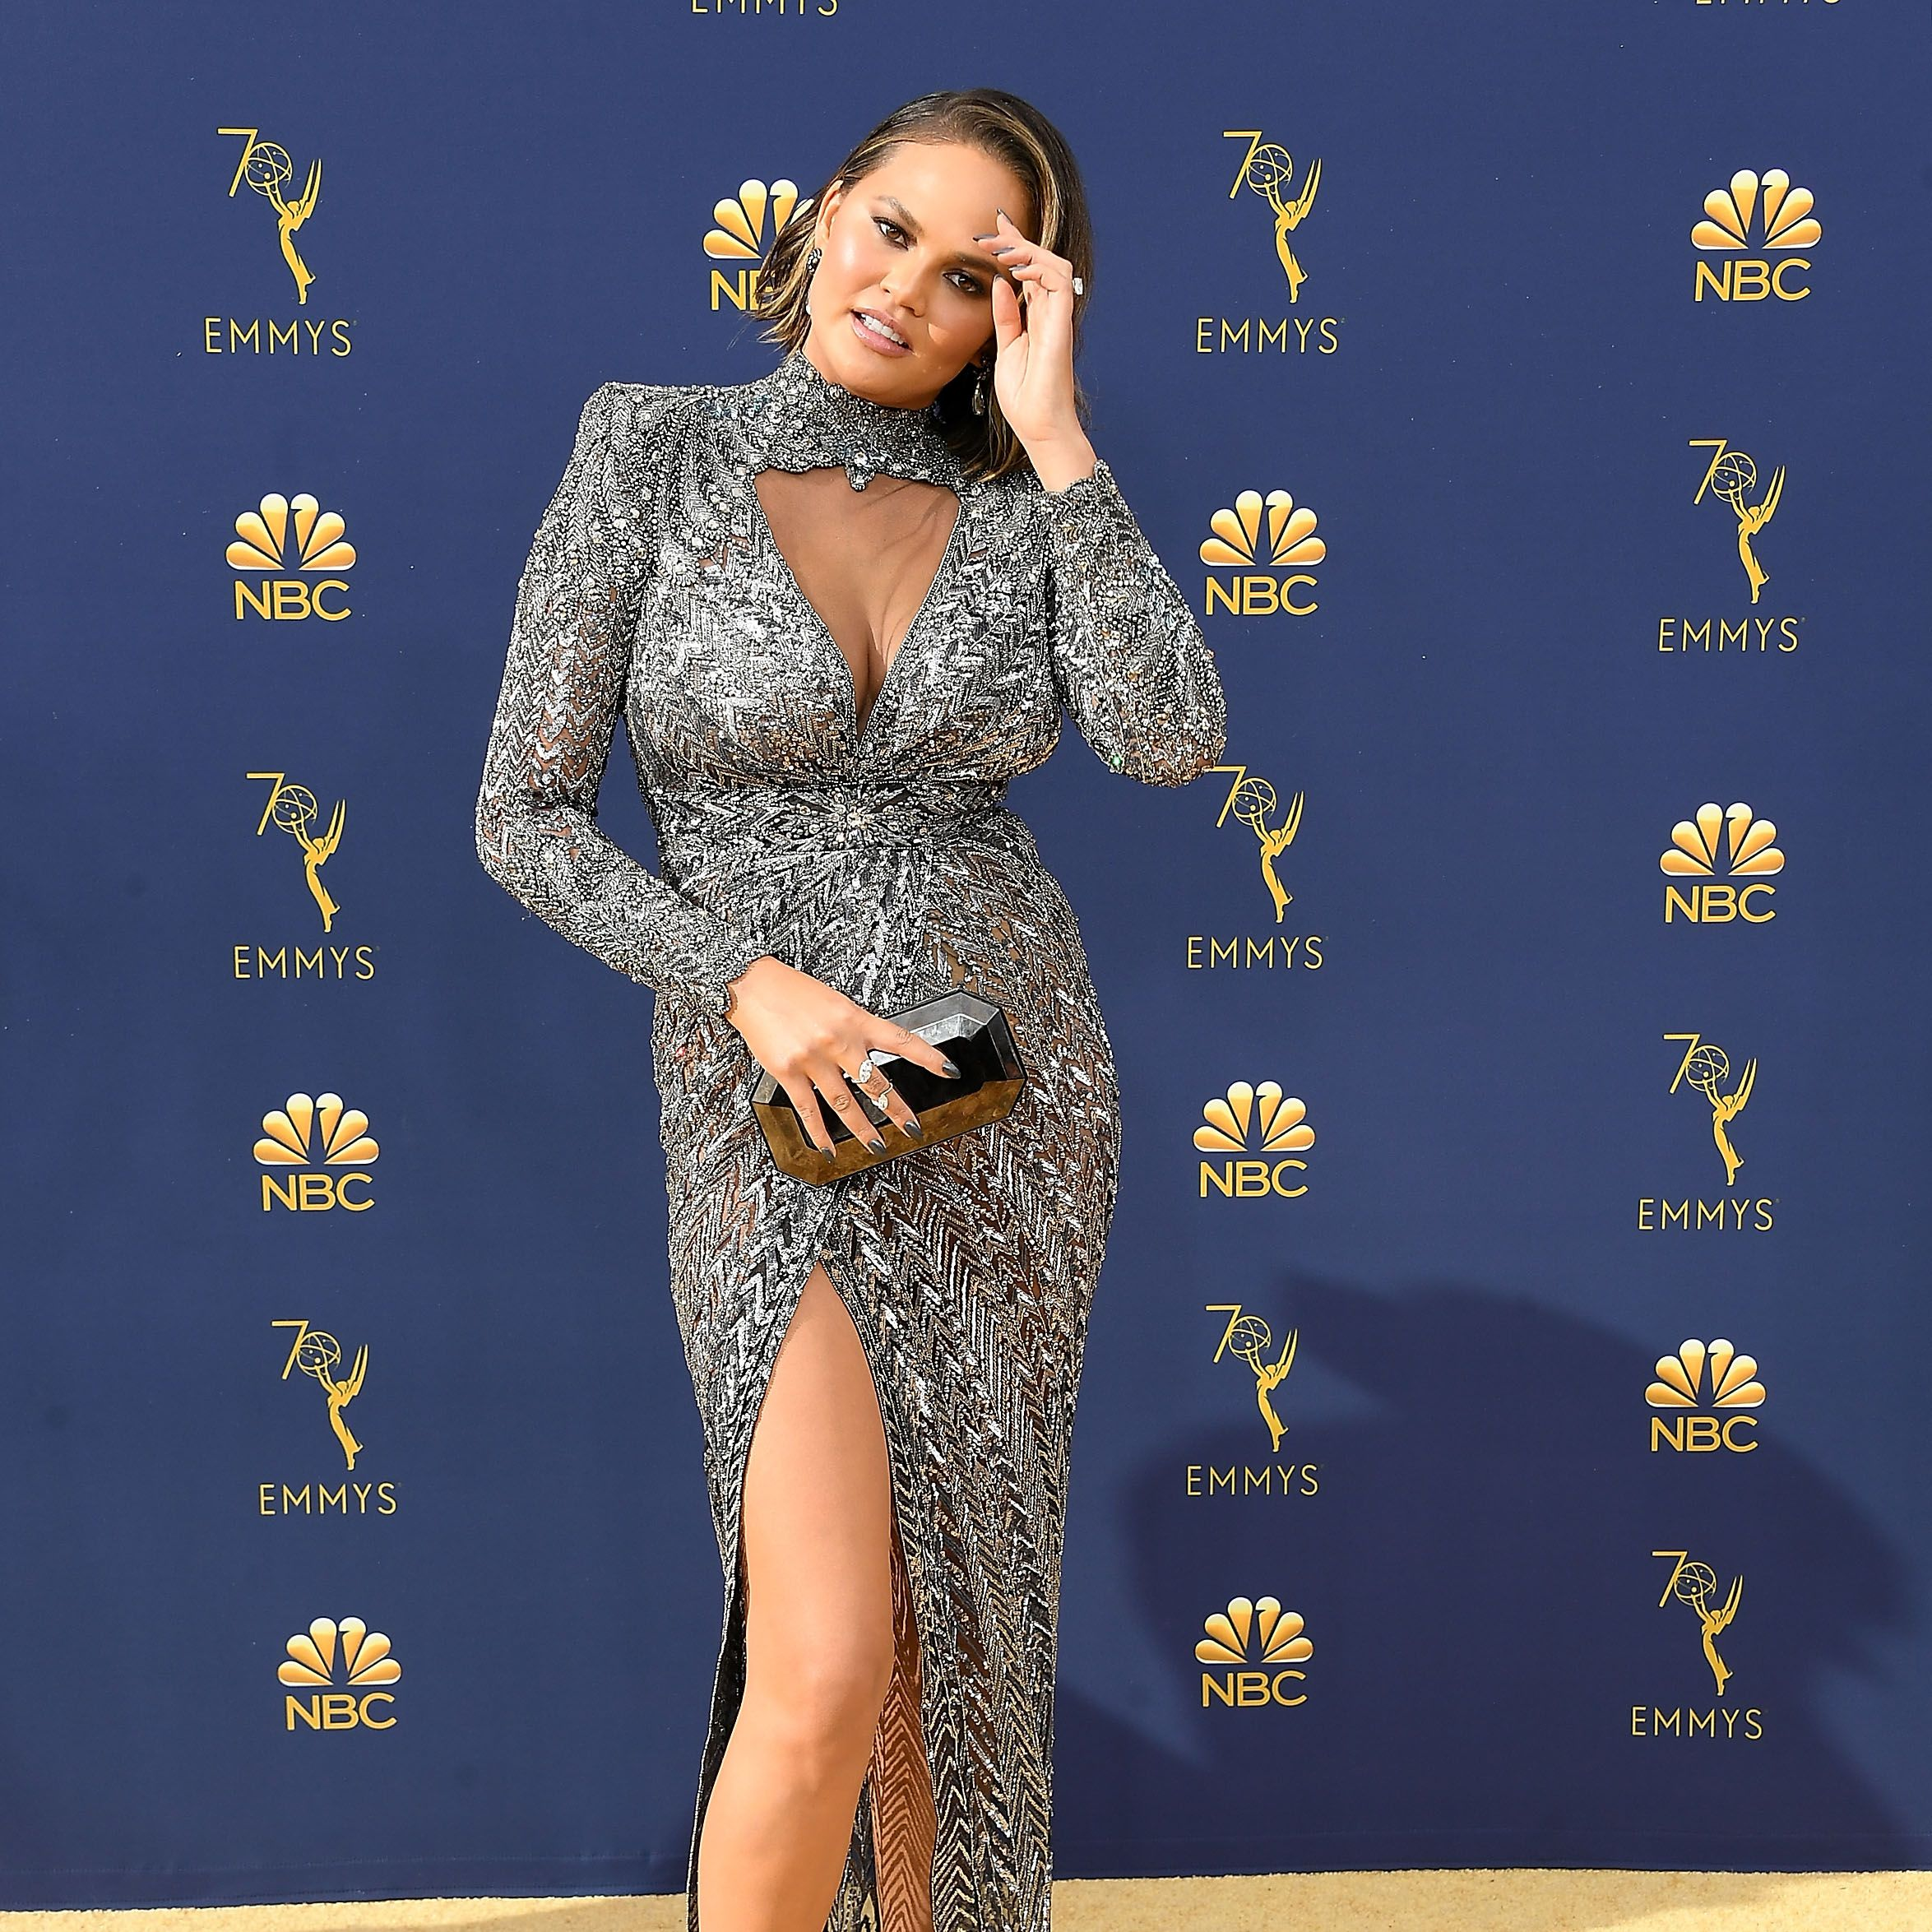 Chrissy Teigen Slams Body-Shamer Who Said She Looked Pregnant at the Emmys